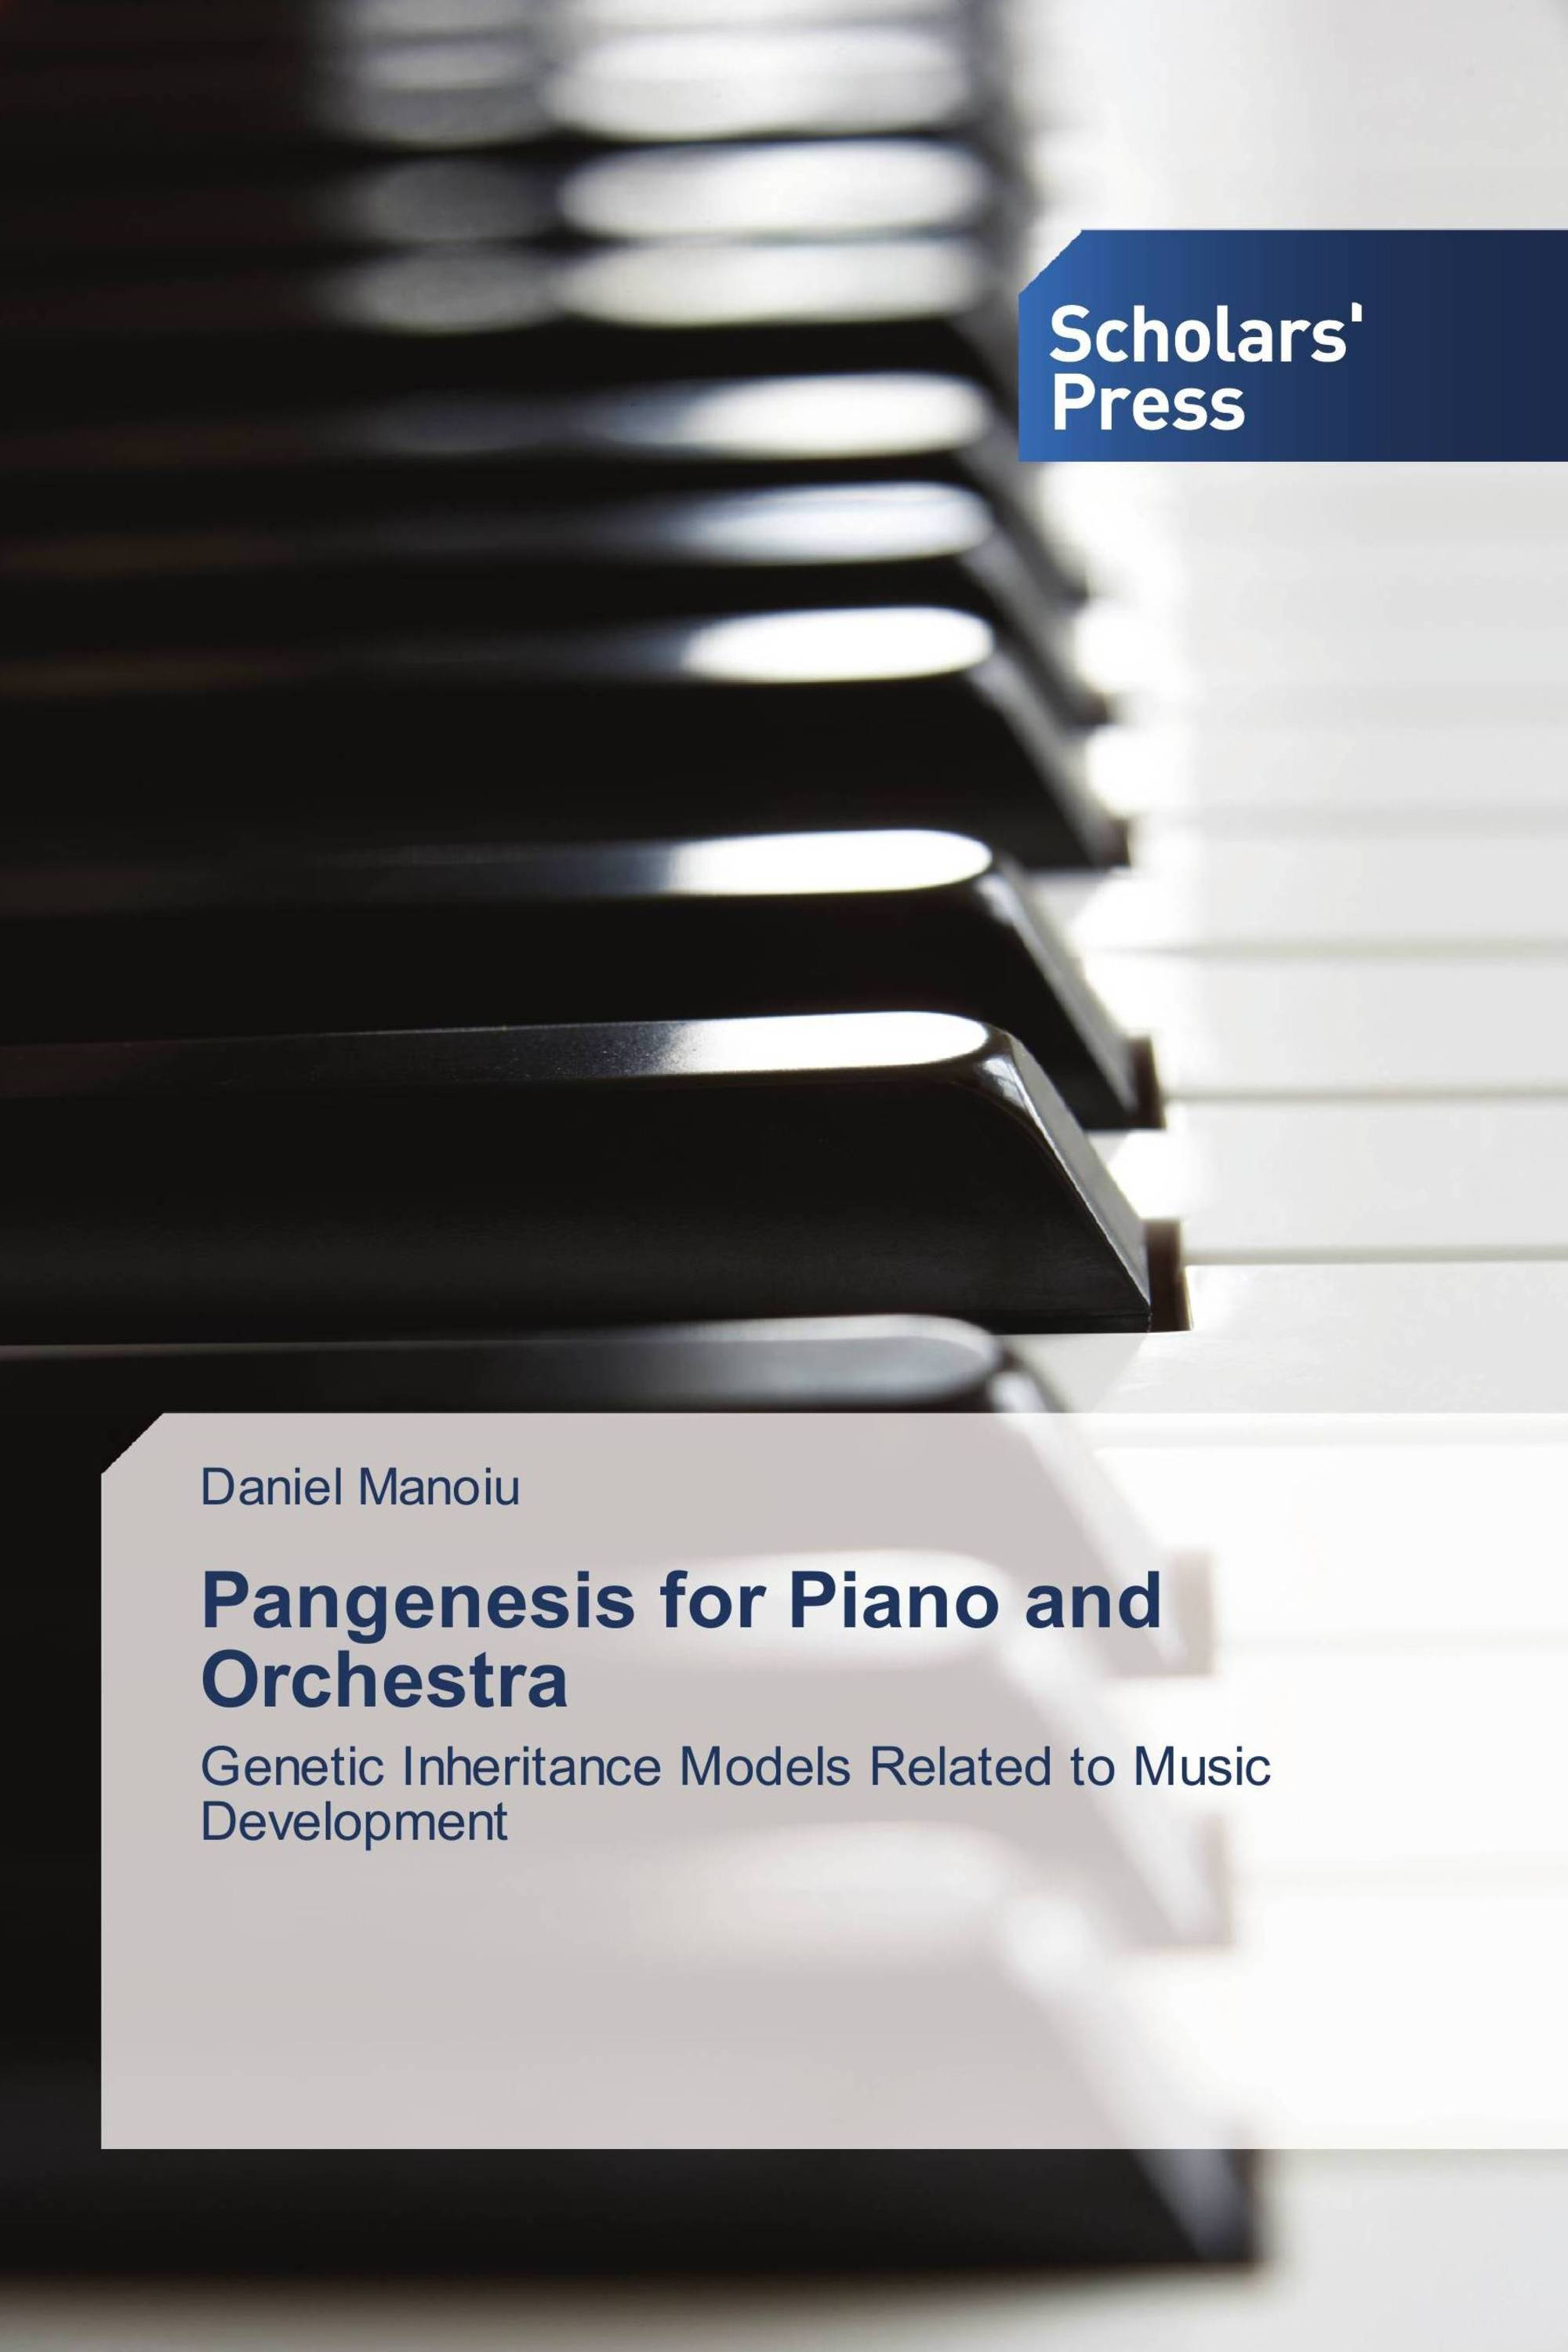 Pangenesis for Piano and Orchestra